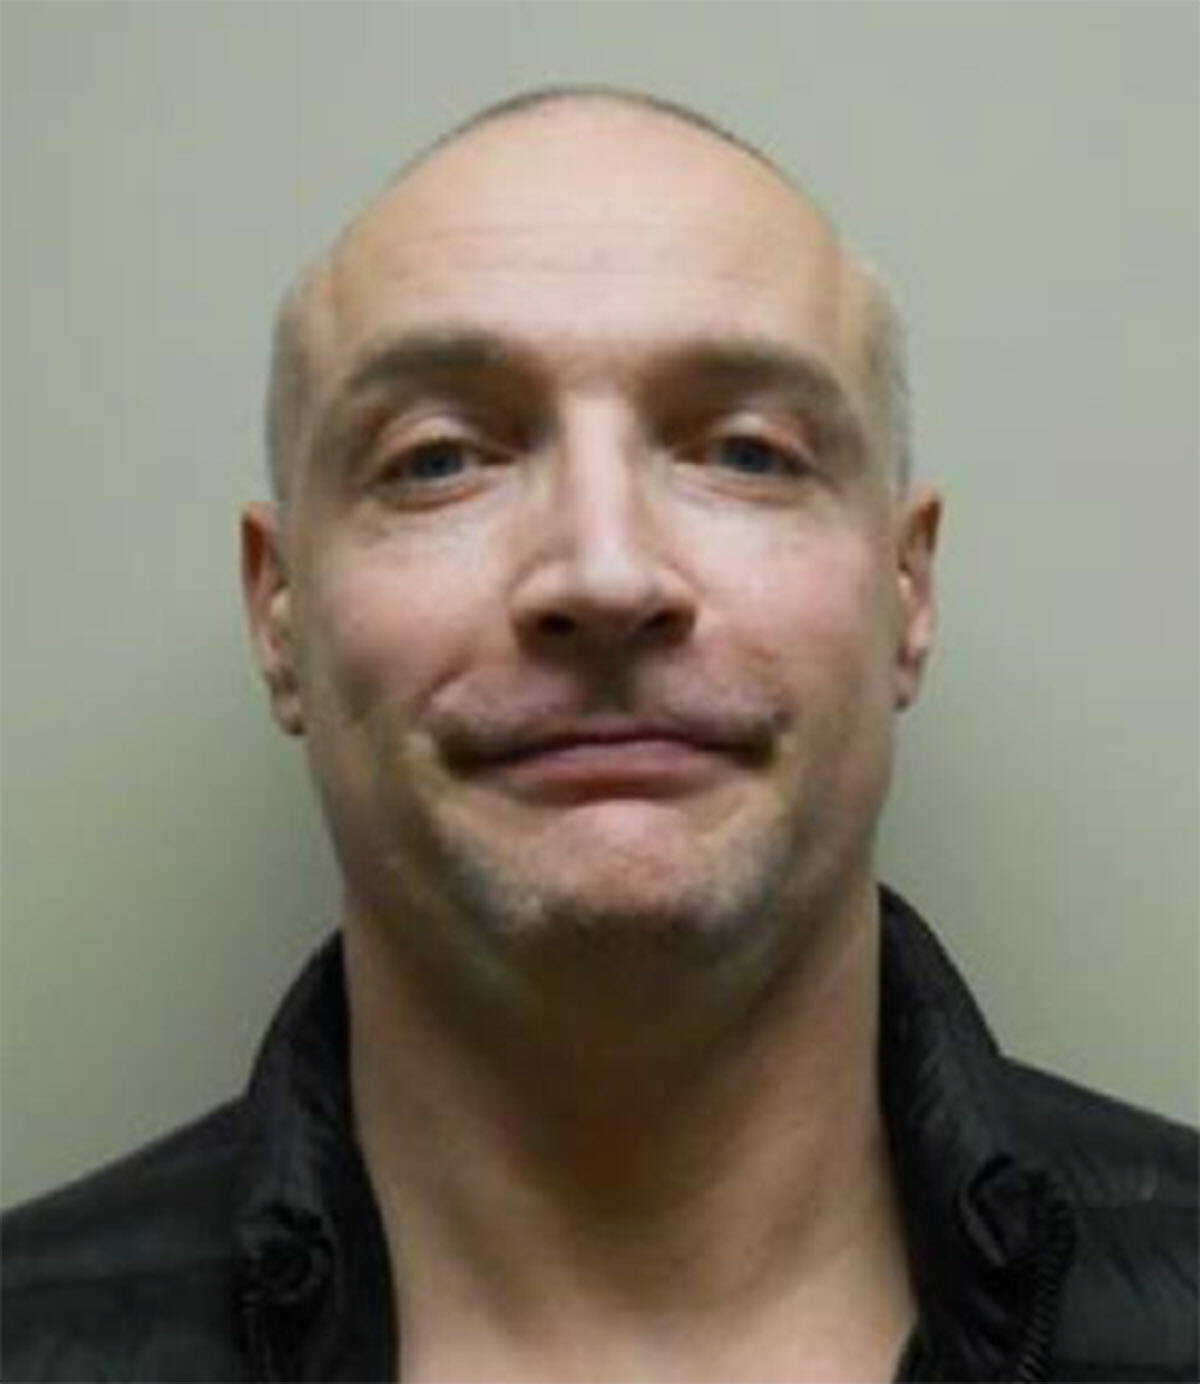 """Name: ALEXANDER, Dale Age: 49 Height: 6'0"""" ft Weight: 174lbs Hair: Bald Eyes: Blue Wanted: Unlawfully at Large Warrant in effect: September 20, 2021 Parole Jurisdiction: Vancouver, BC"""